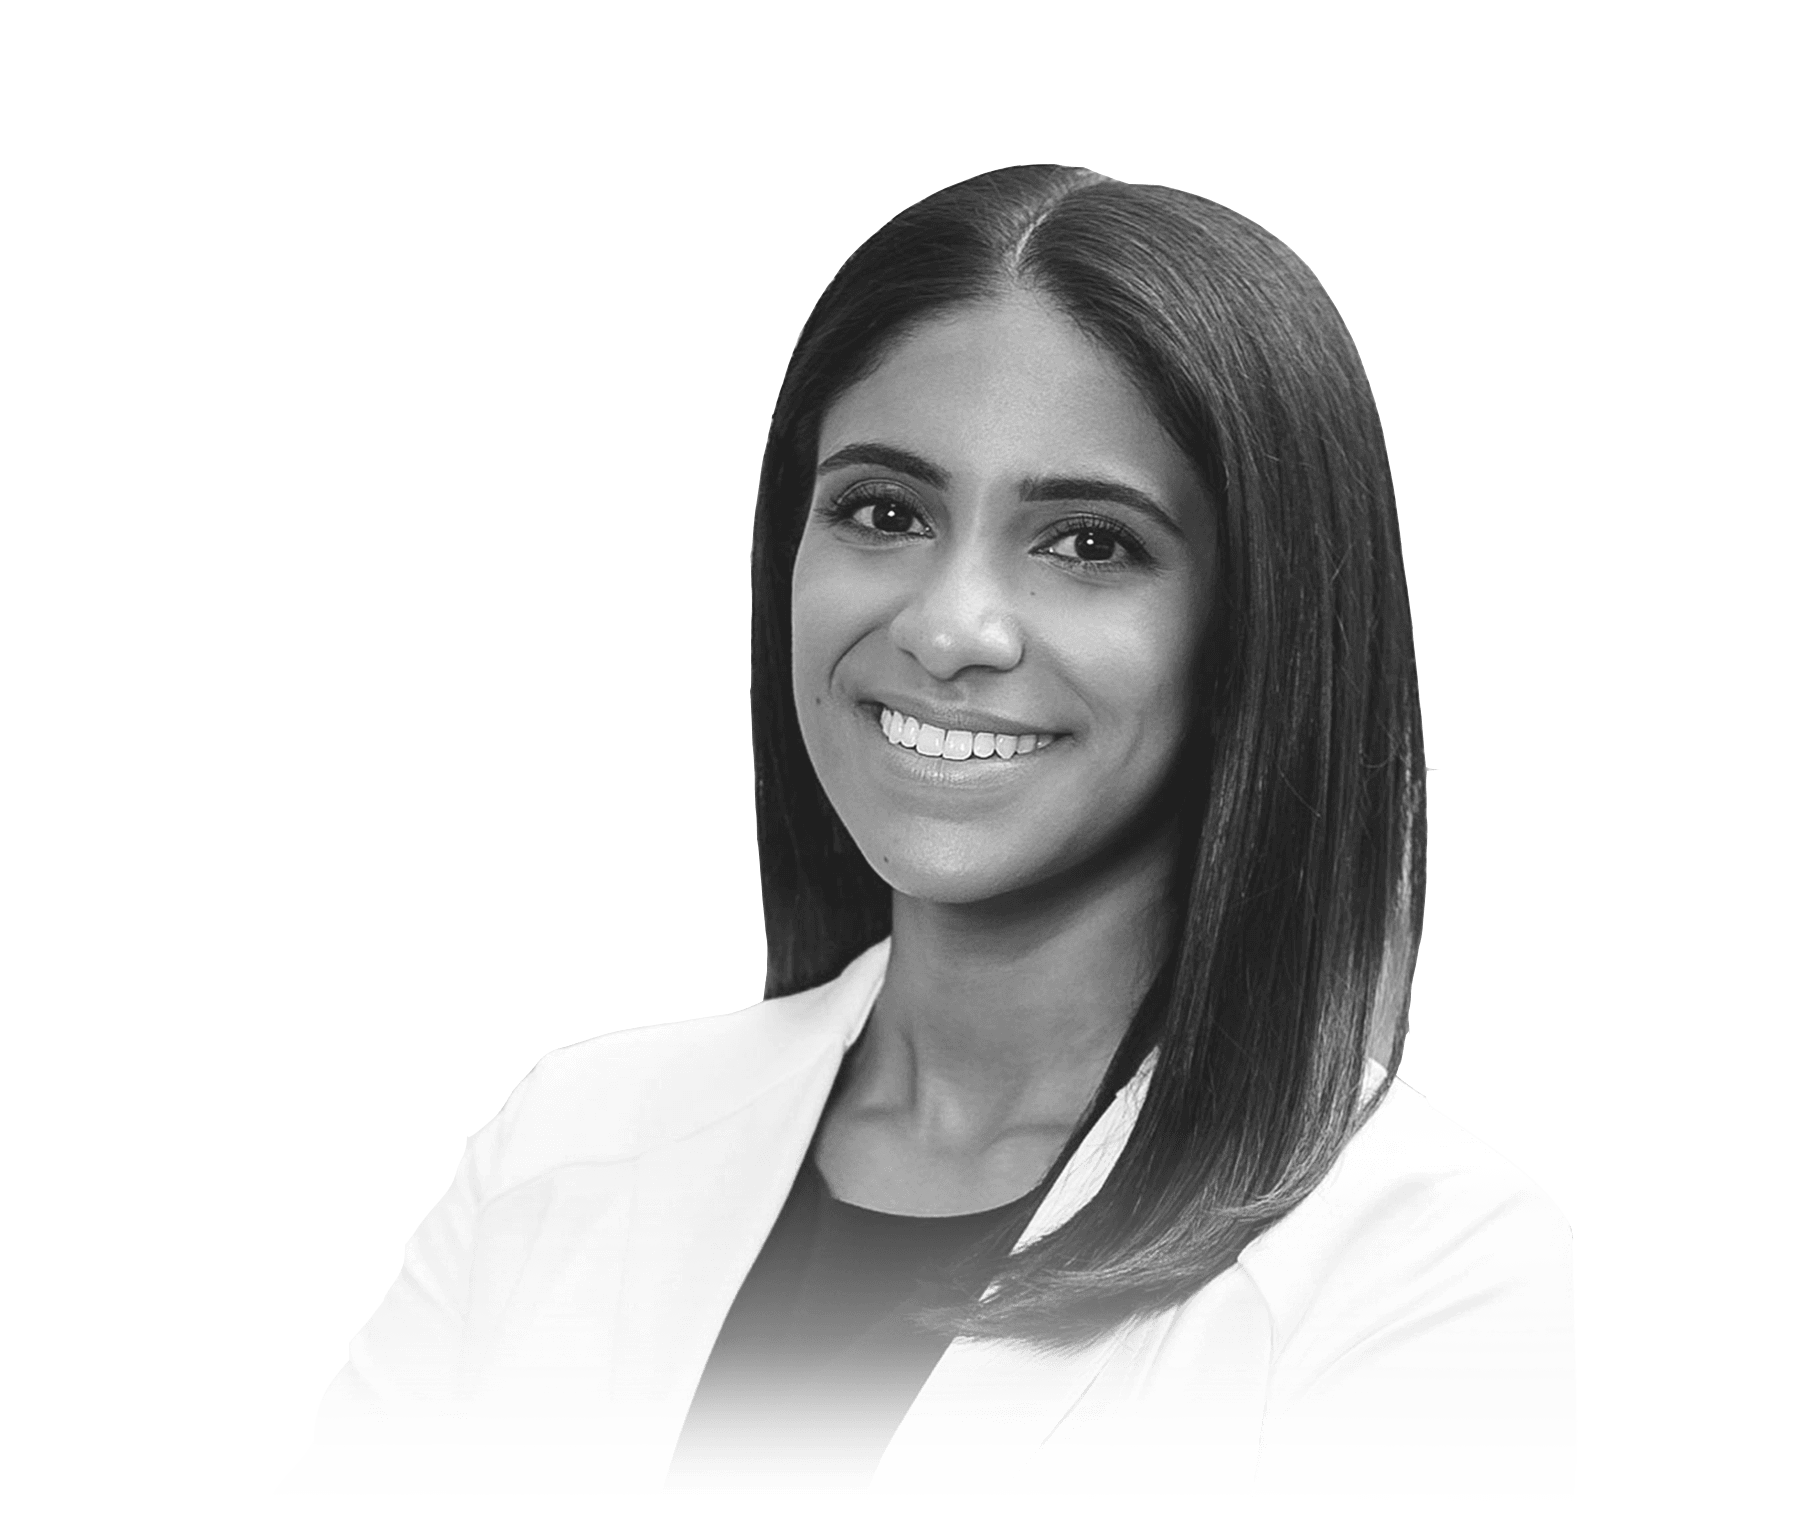 A photo of Dr. Amy Hassan